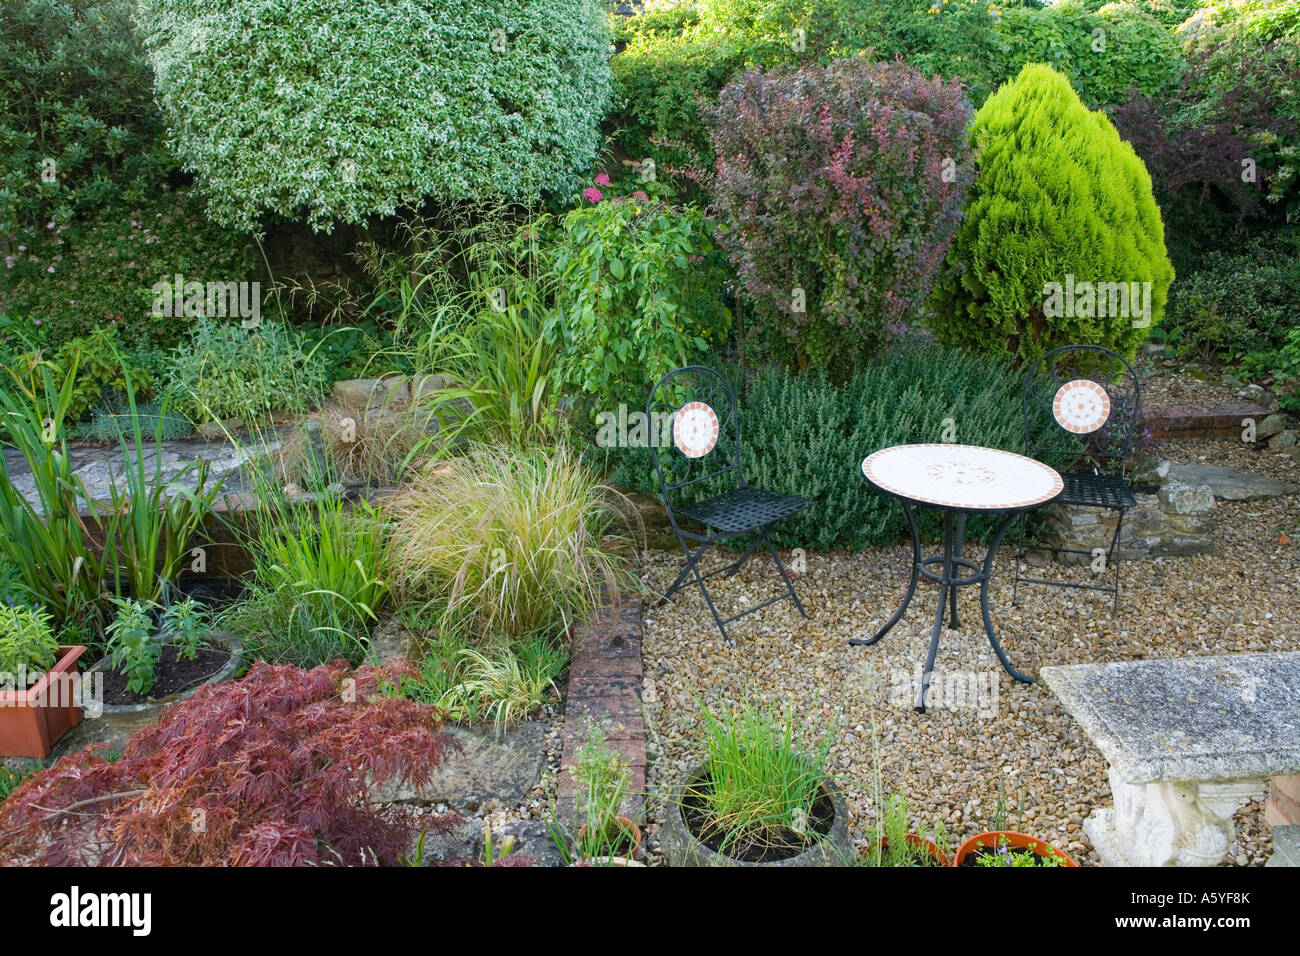 Garden Furniture On Gravel prospect house devon uk peter wadeley small gravel patio area with